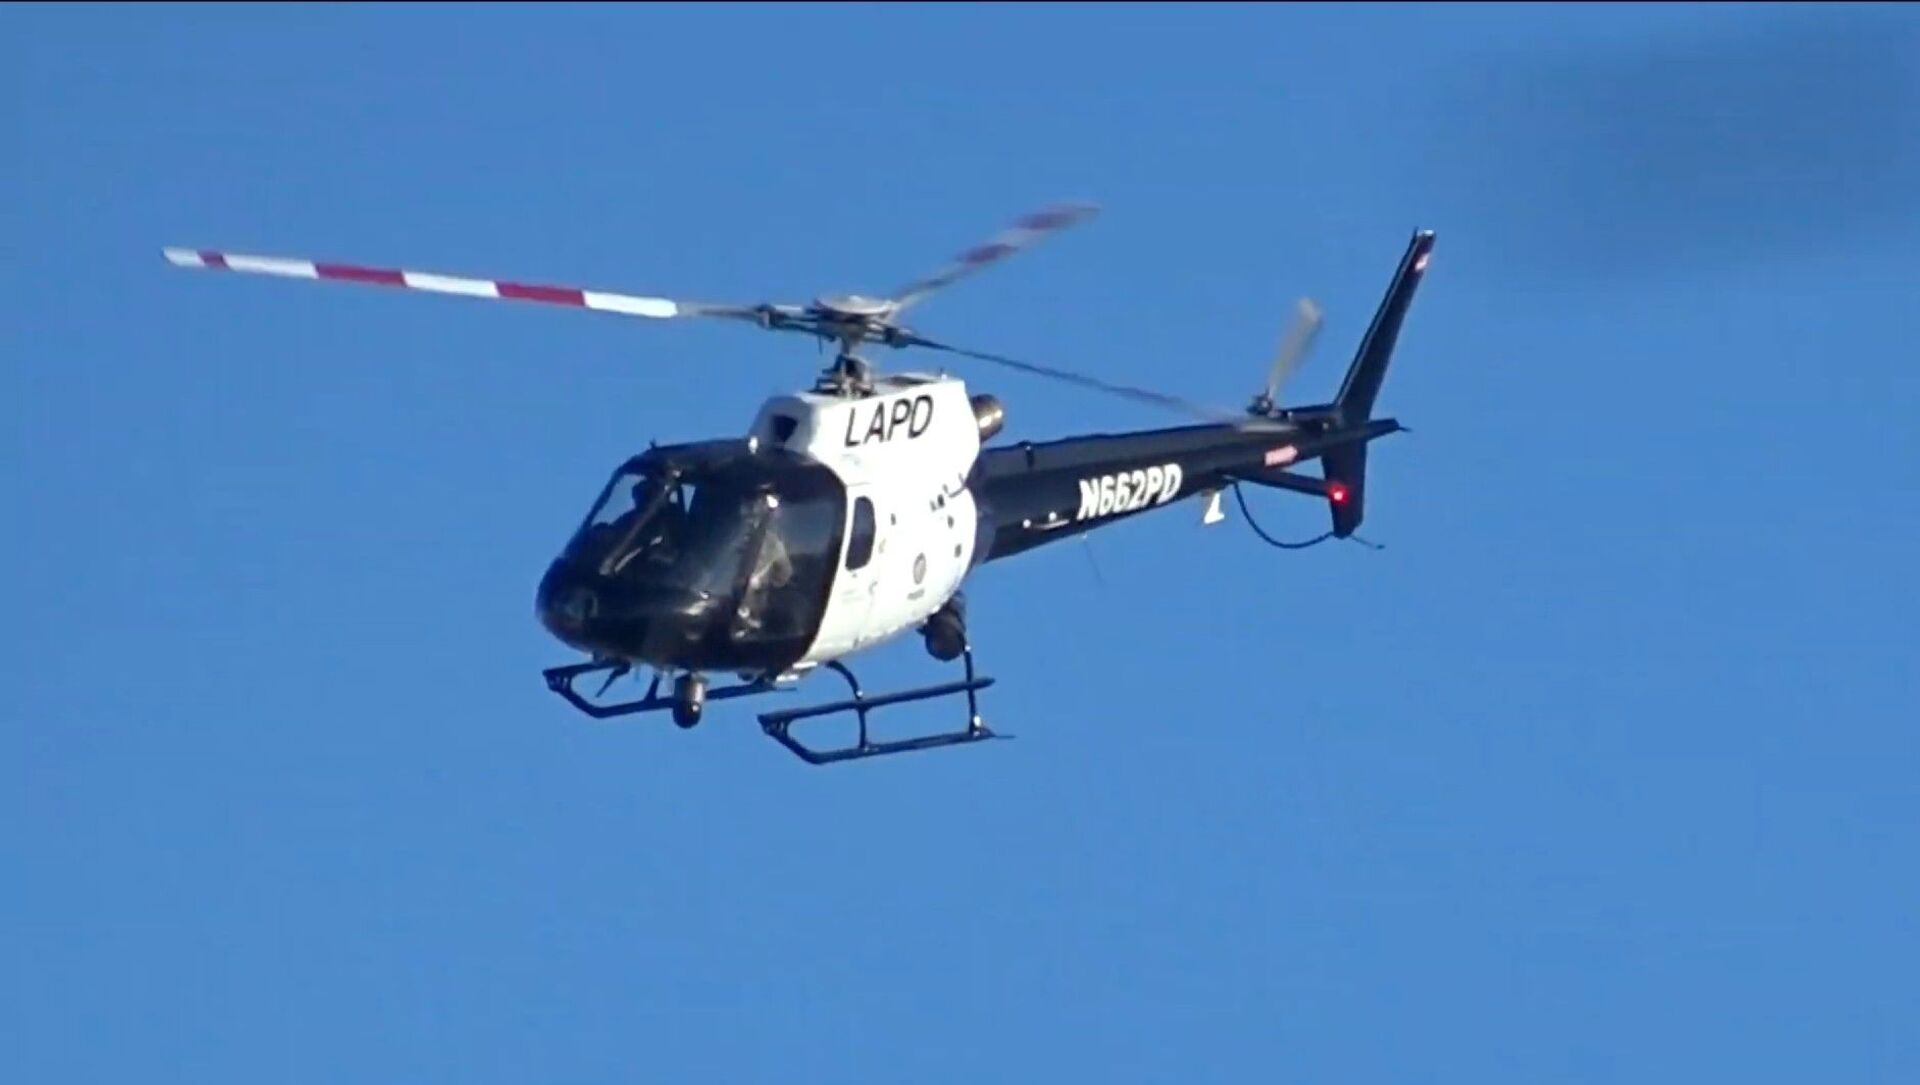 Screenshot image captures helicopter operated by California's Los Angeles Police Department as it makes several passes near Venice Beach in March 2019. - Sputnik International, 1920, 02.08.2021